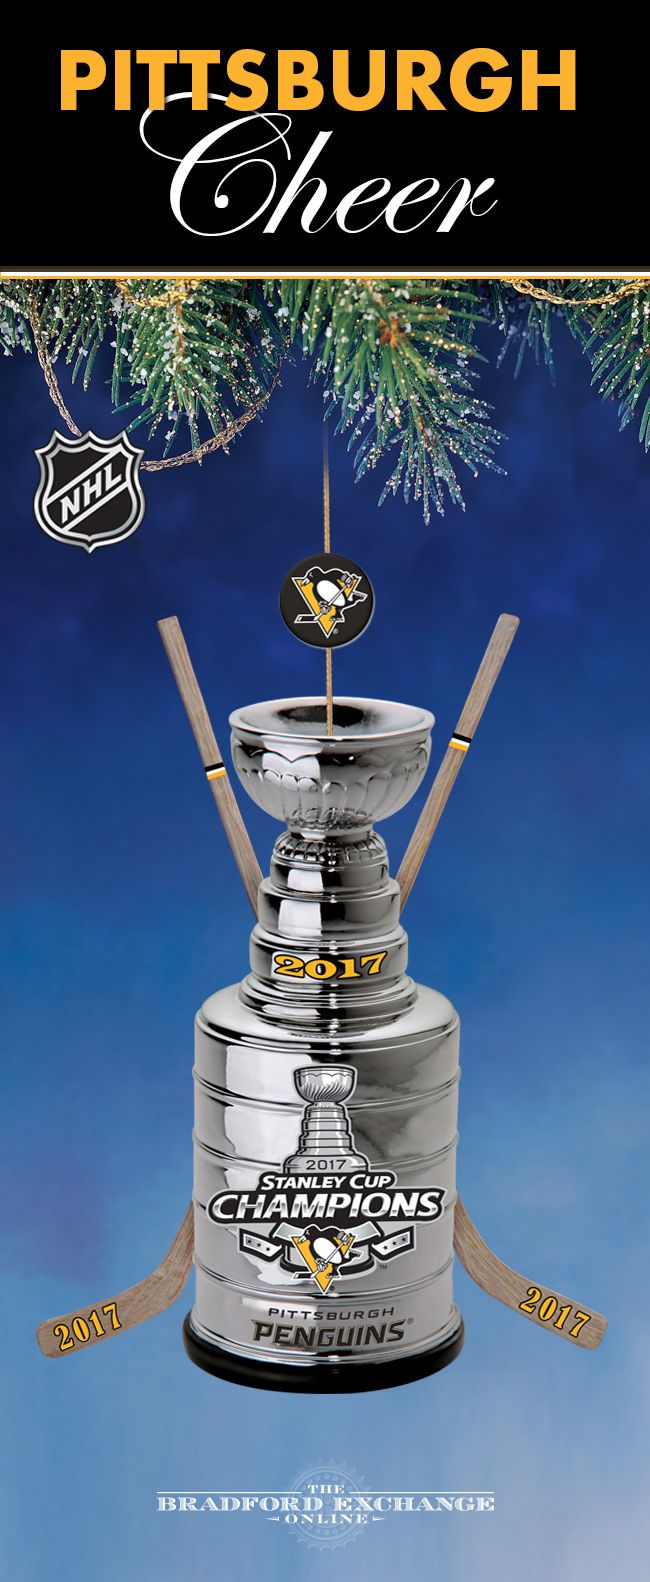 Add a festive touch to a winning season! Celebrate your Pittsburgh Penguins new title of 2017 Stanley Cup Champions for holidays to come with this commemorative Christmas ornament.